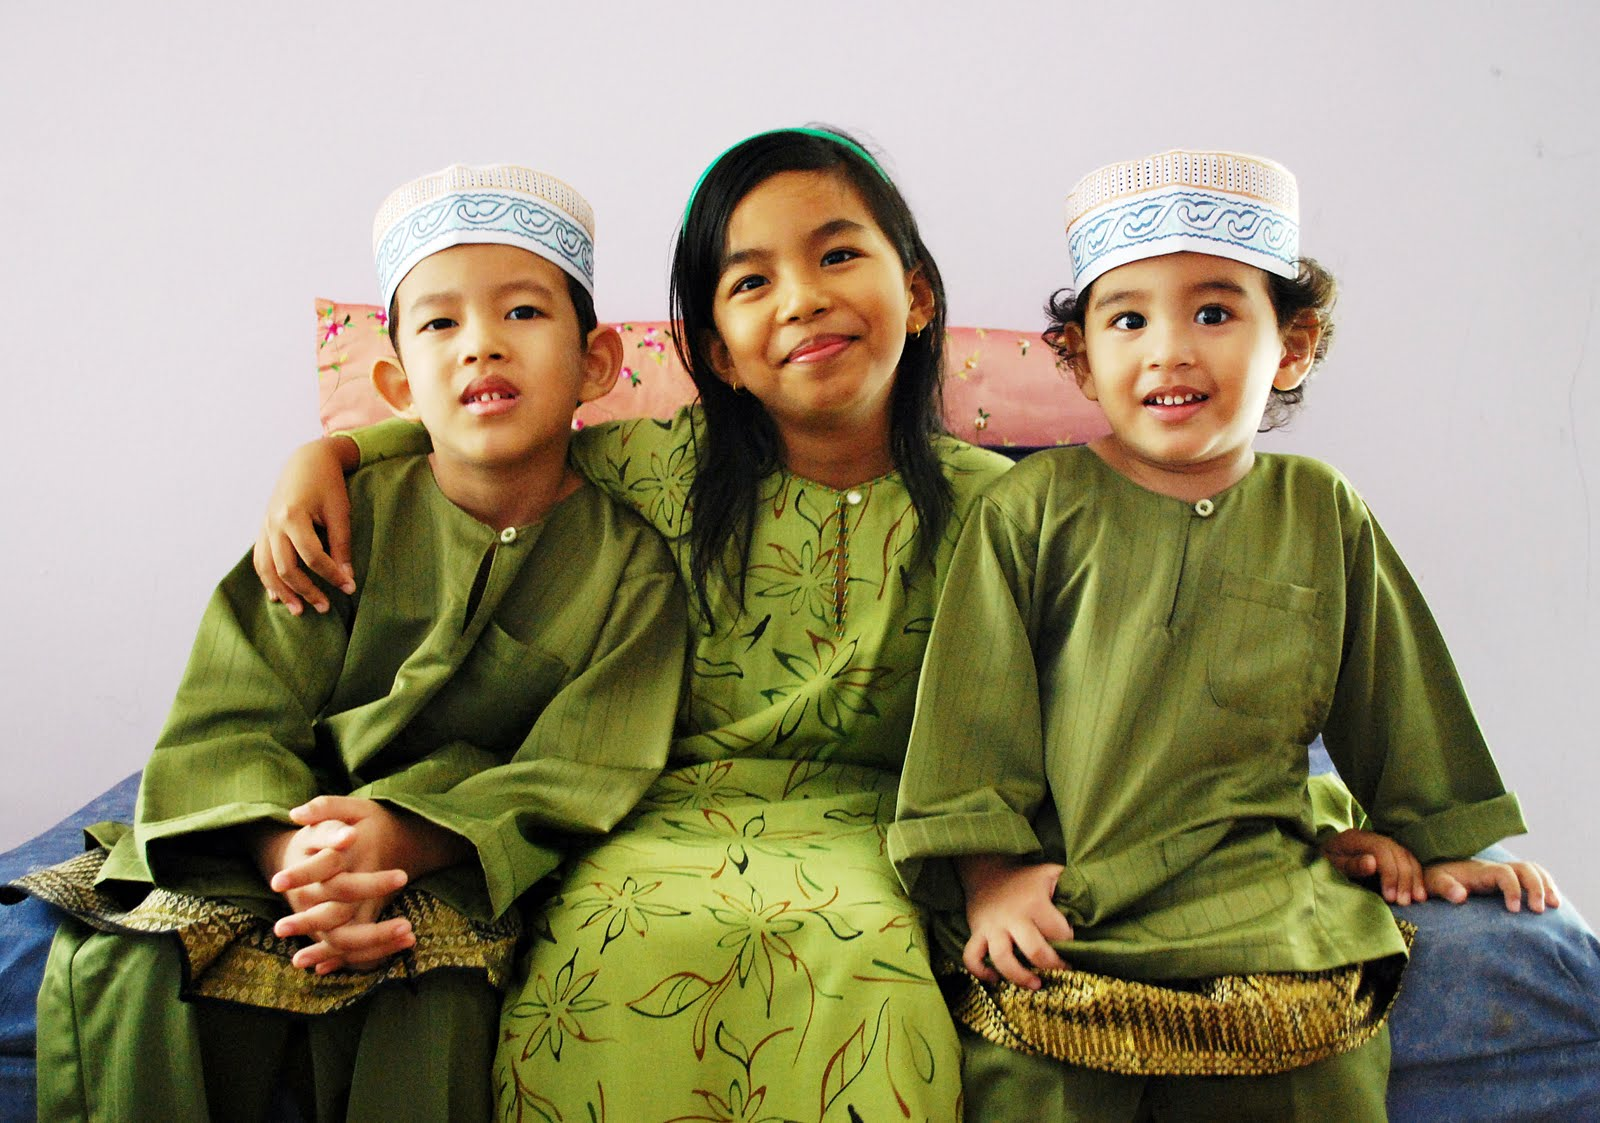 iclick yoUR moment photography: HARI RAYA FAMILY MOMENT PROMOTION 2011